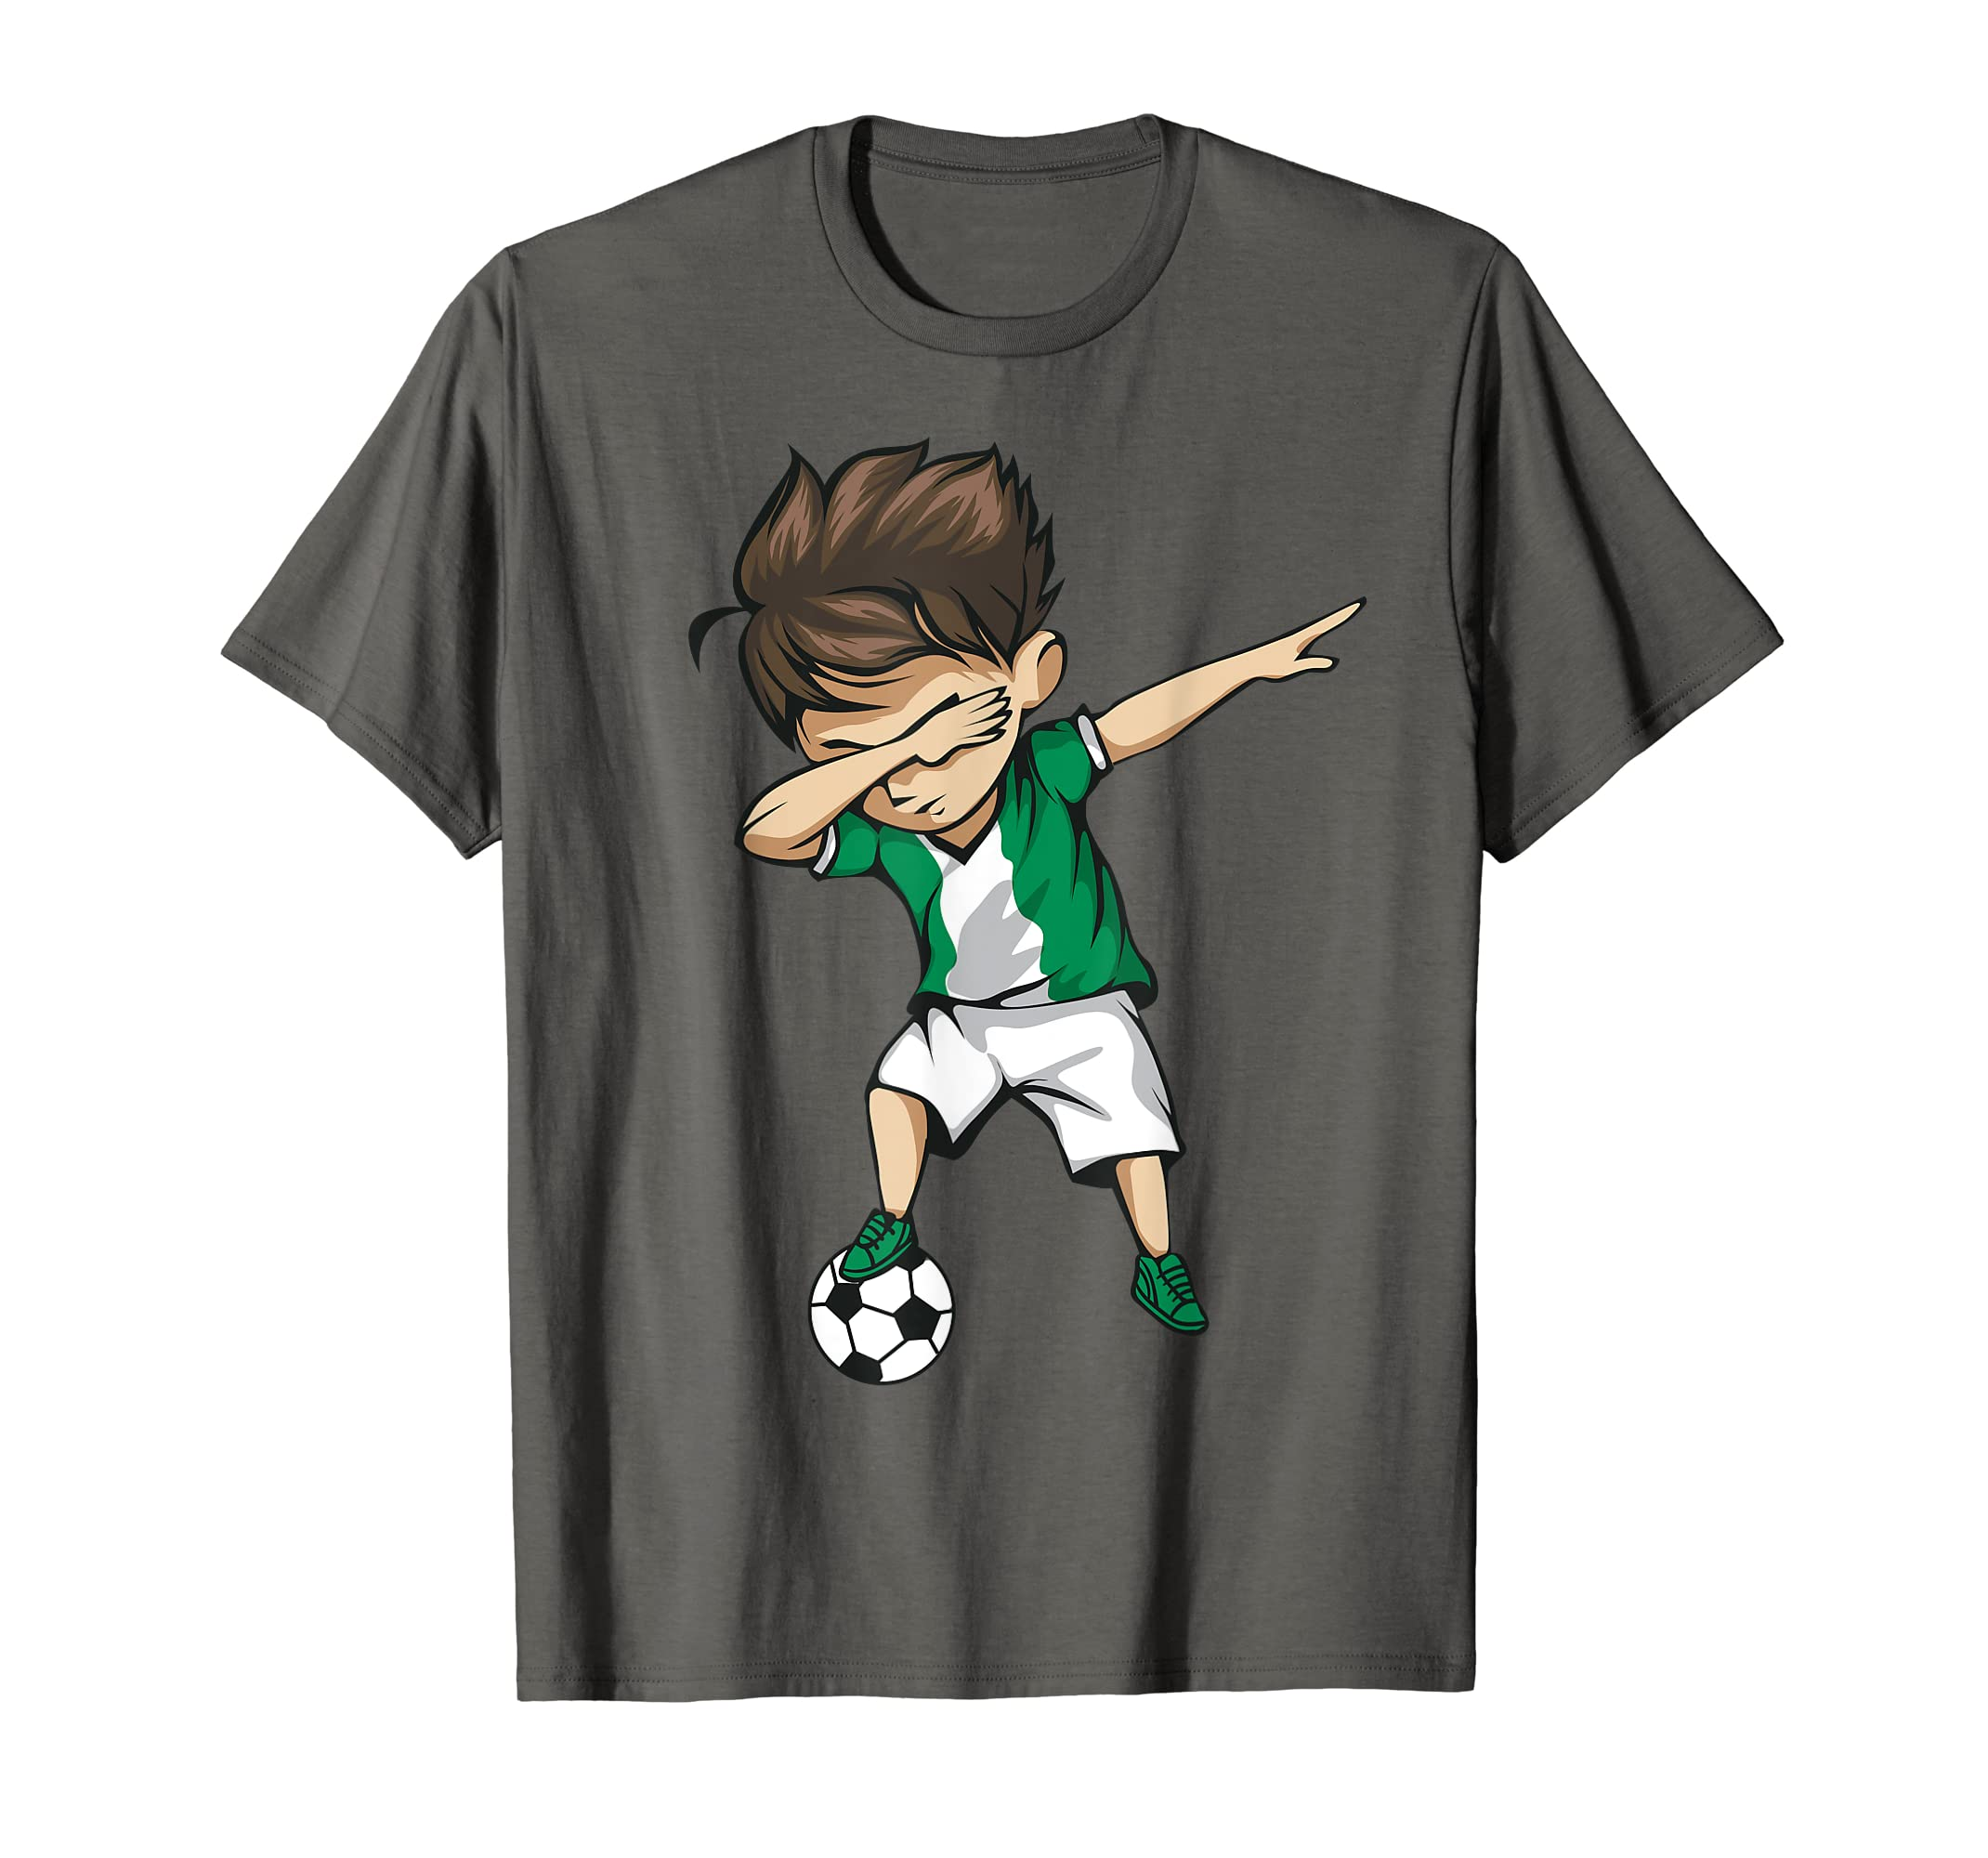 7d87fe5b8 Amazon.com  Dabbing Soccer Boy Nigeria Jersey Shirt - Nigerian Football   Clothing